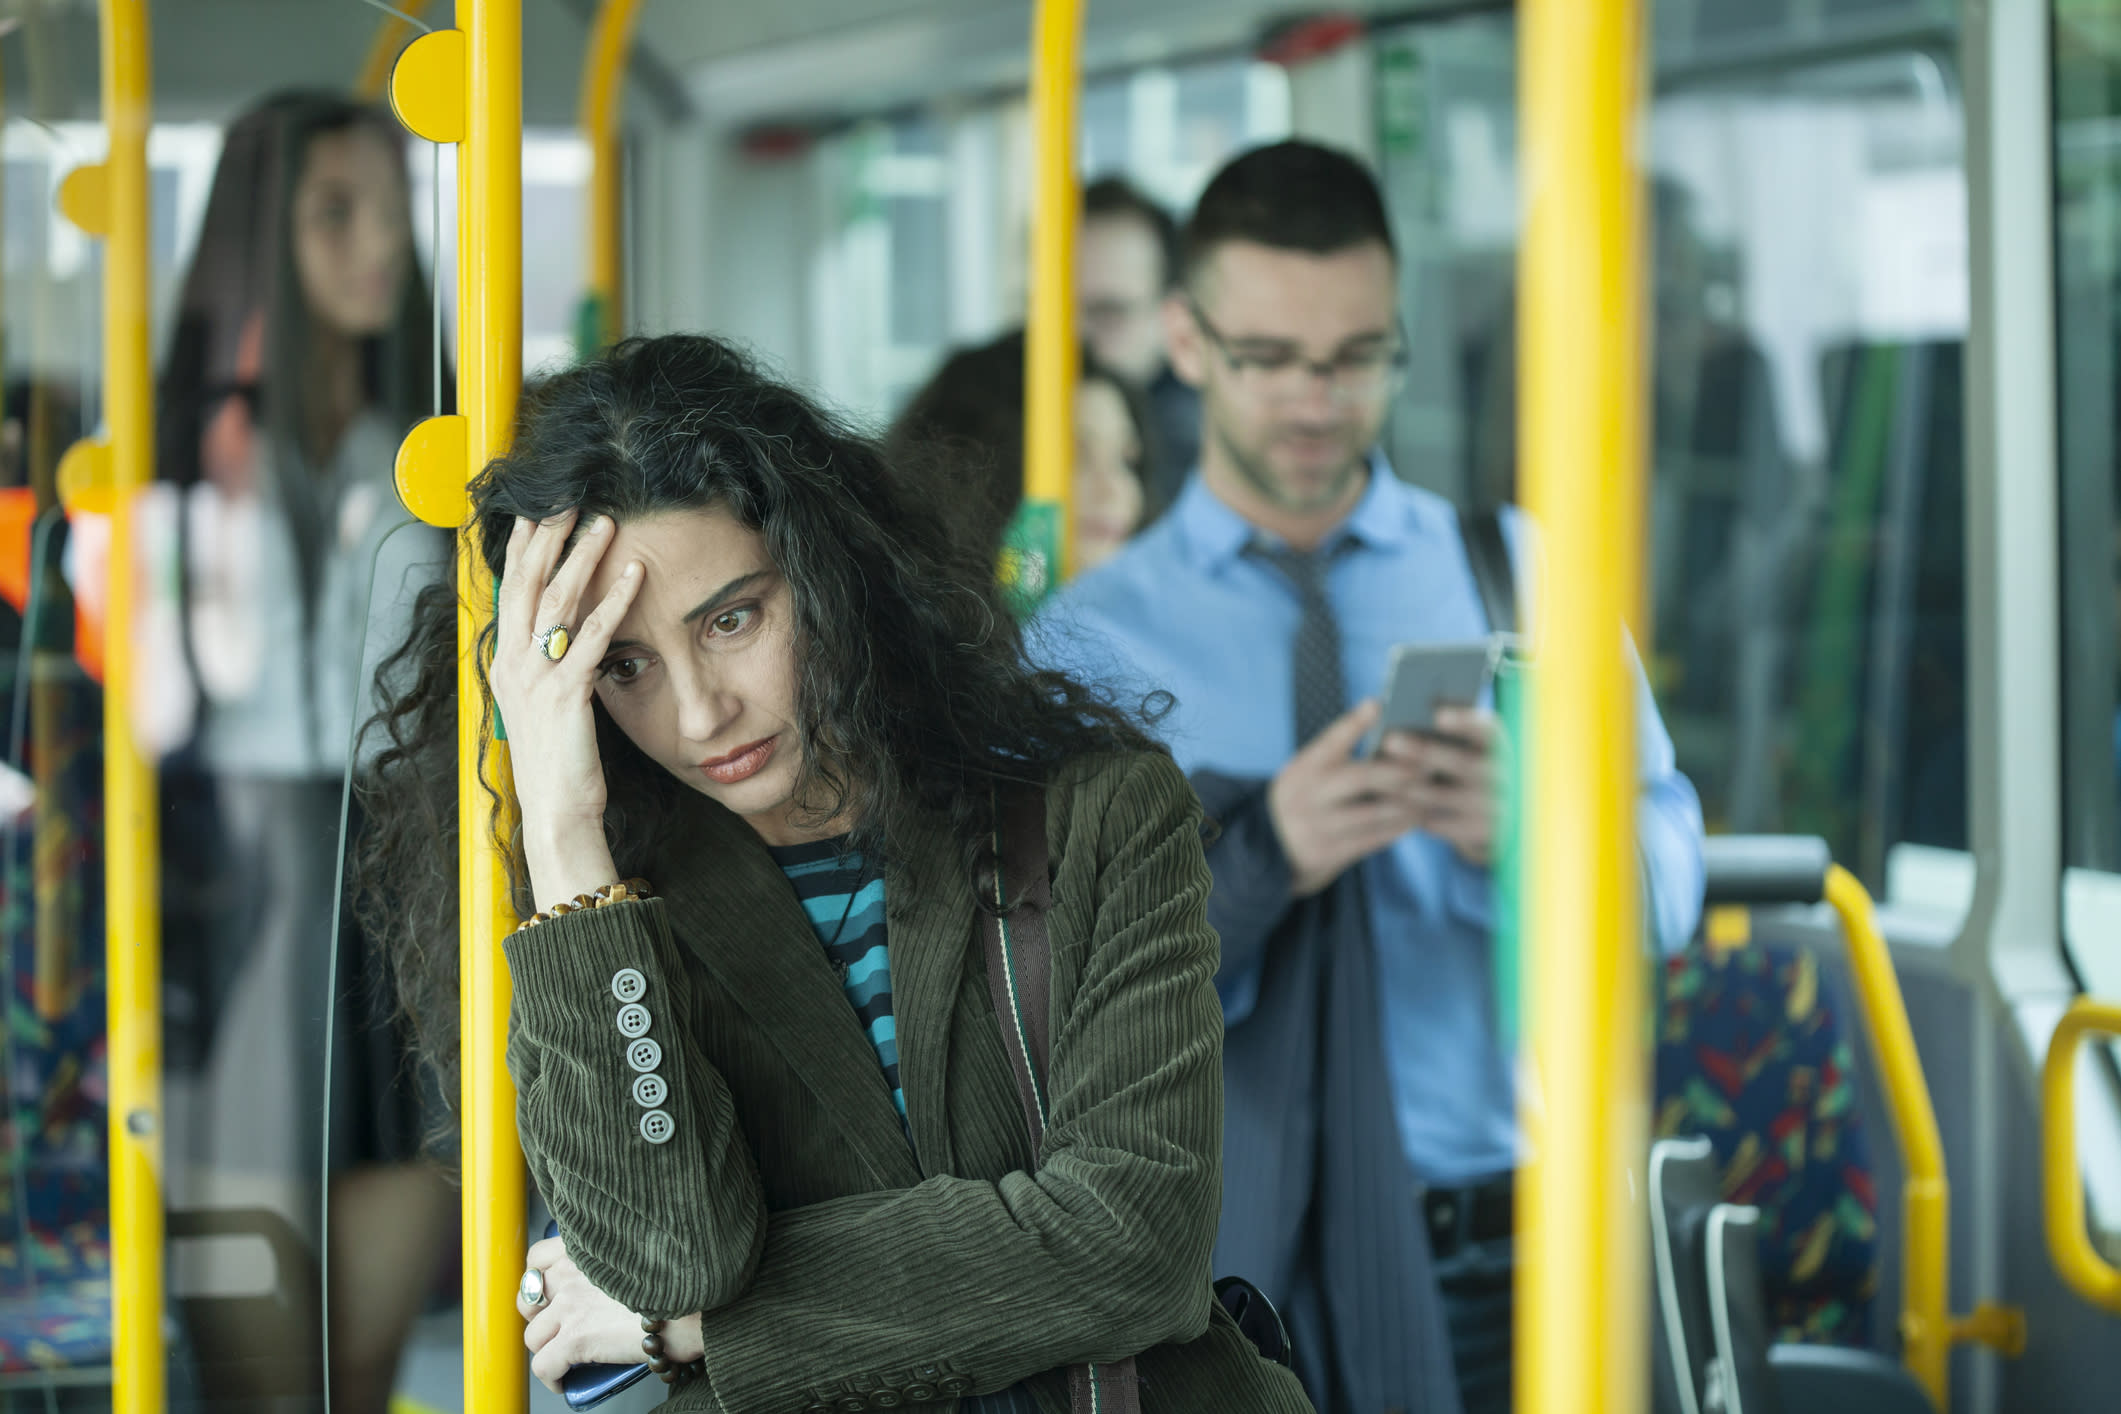 'A nightmare': Commuters swindled by new contactless Opal card roll-out